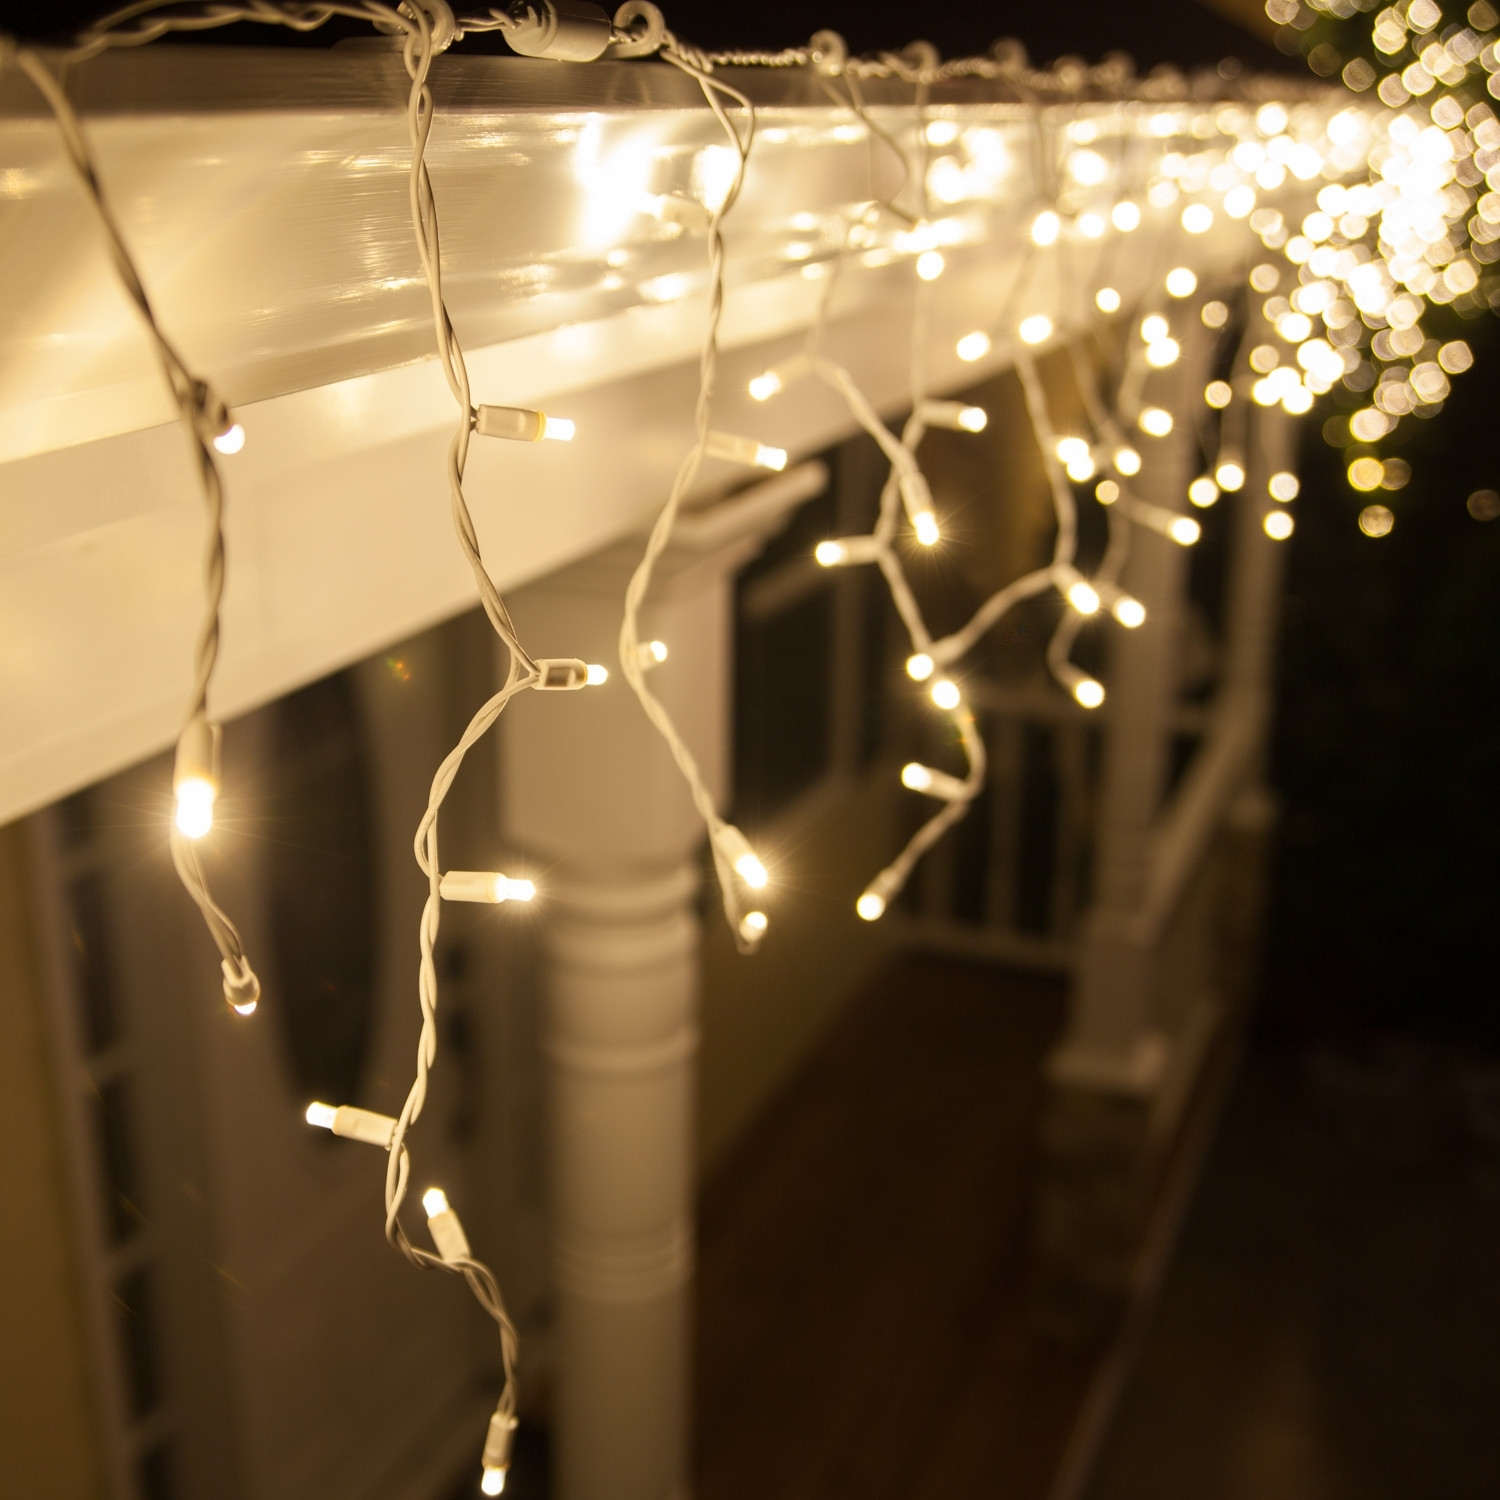 Hang Warm White Icicle Lights Outdoors And Inside Too! So Cozy For Throughout Outdoor Hanging Xmas Lights (View 9 of 15)